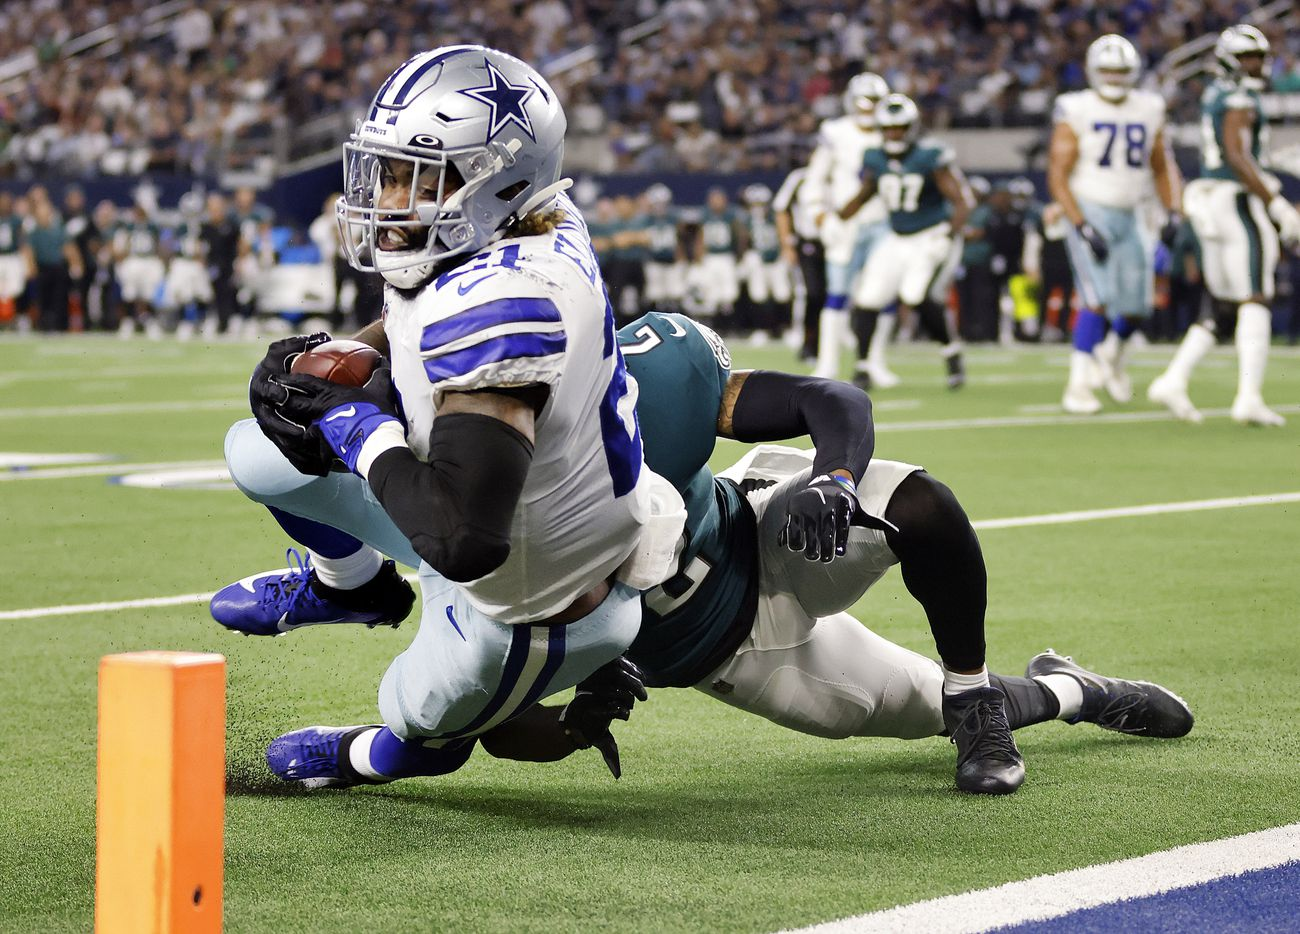 Dallas Cowboys running back Ezekiel Elliott (21) dives for the pylon but comes up short as he's tackled by Philadelphia Eagles cornerback Darius Slay (2) during the first quarter at AT&T Stadium in Arlington, Monday, September 27, 2021. The Cowboys would score a touchdown shortly thereafter. (Tom Fox/The Dallas Morning News)